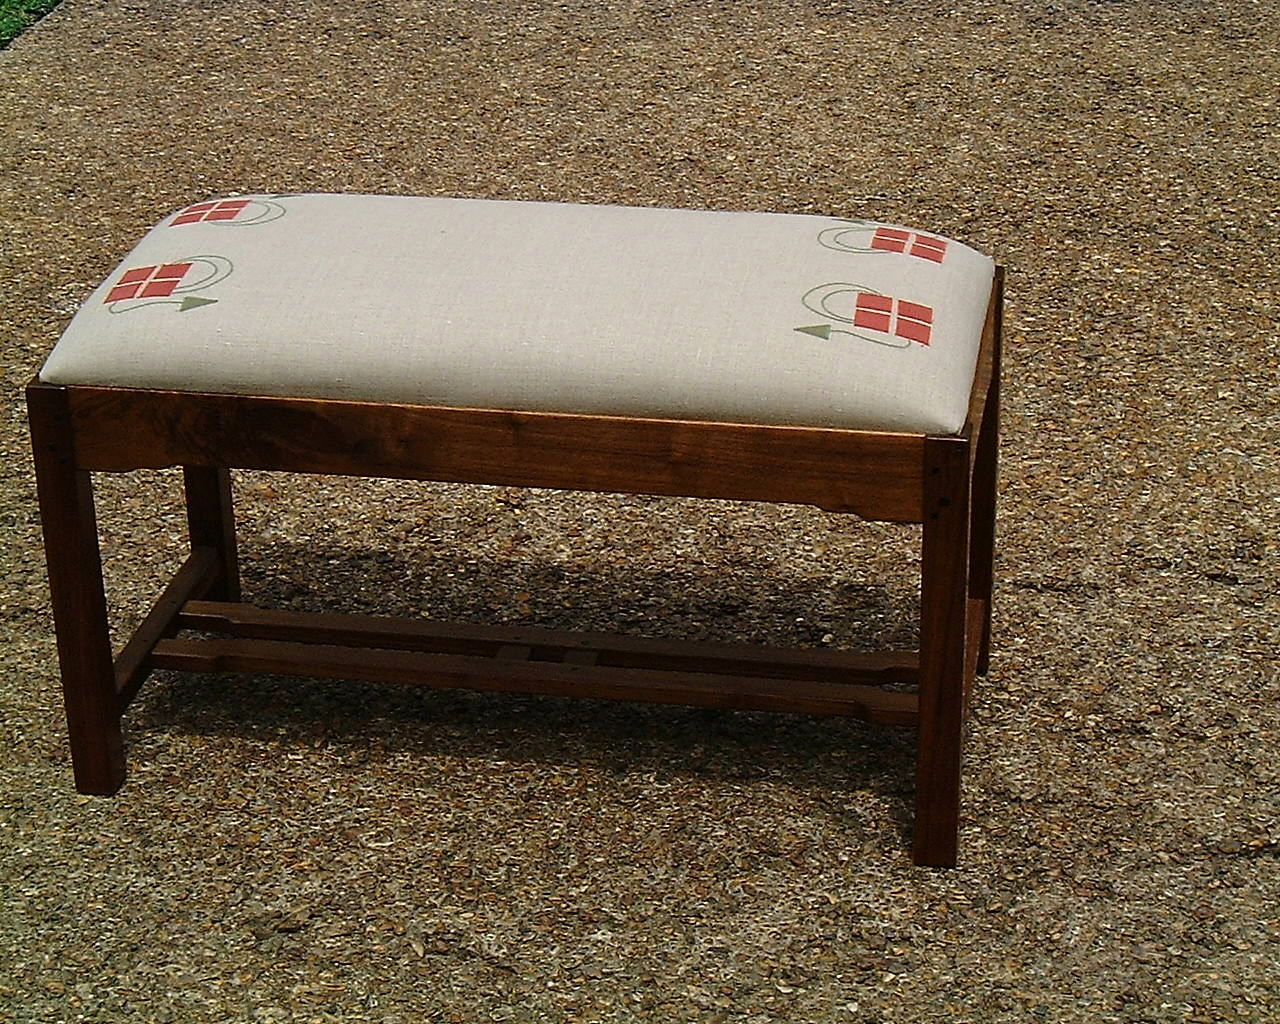 The Checkerberry here again on this Arts & Crafts piano bench is terra cotta and loden on natural linen